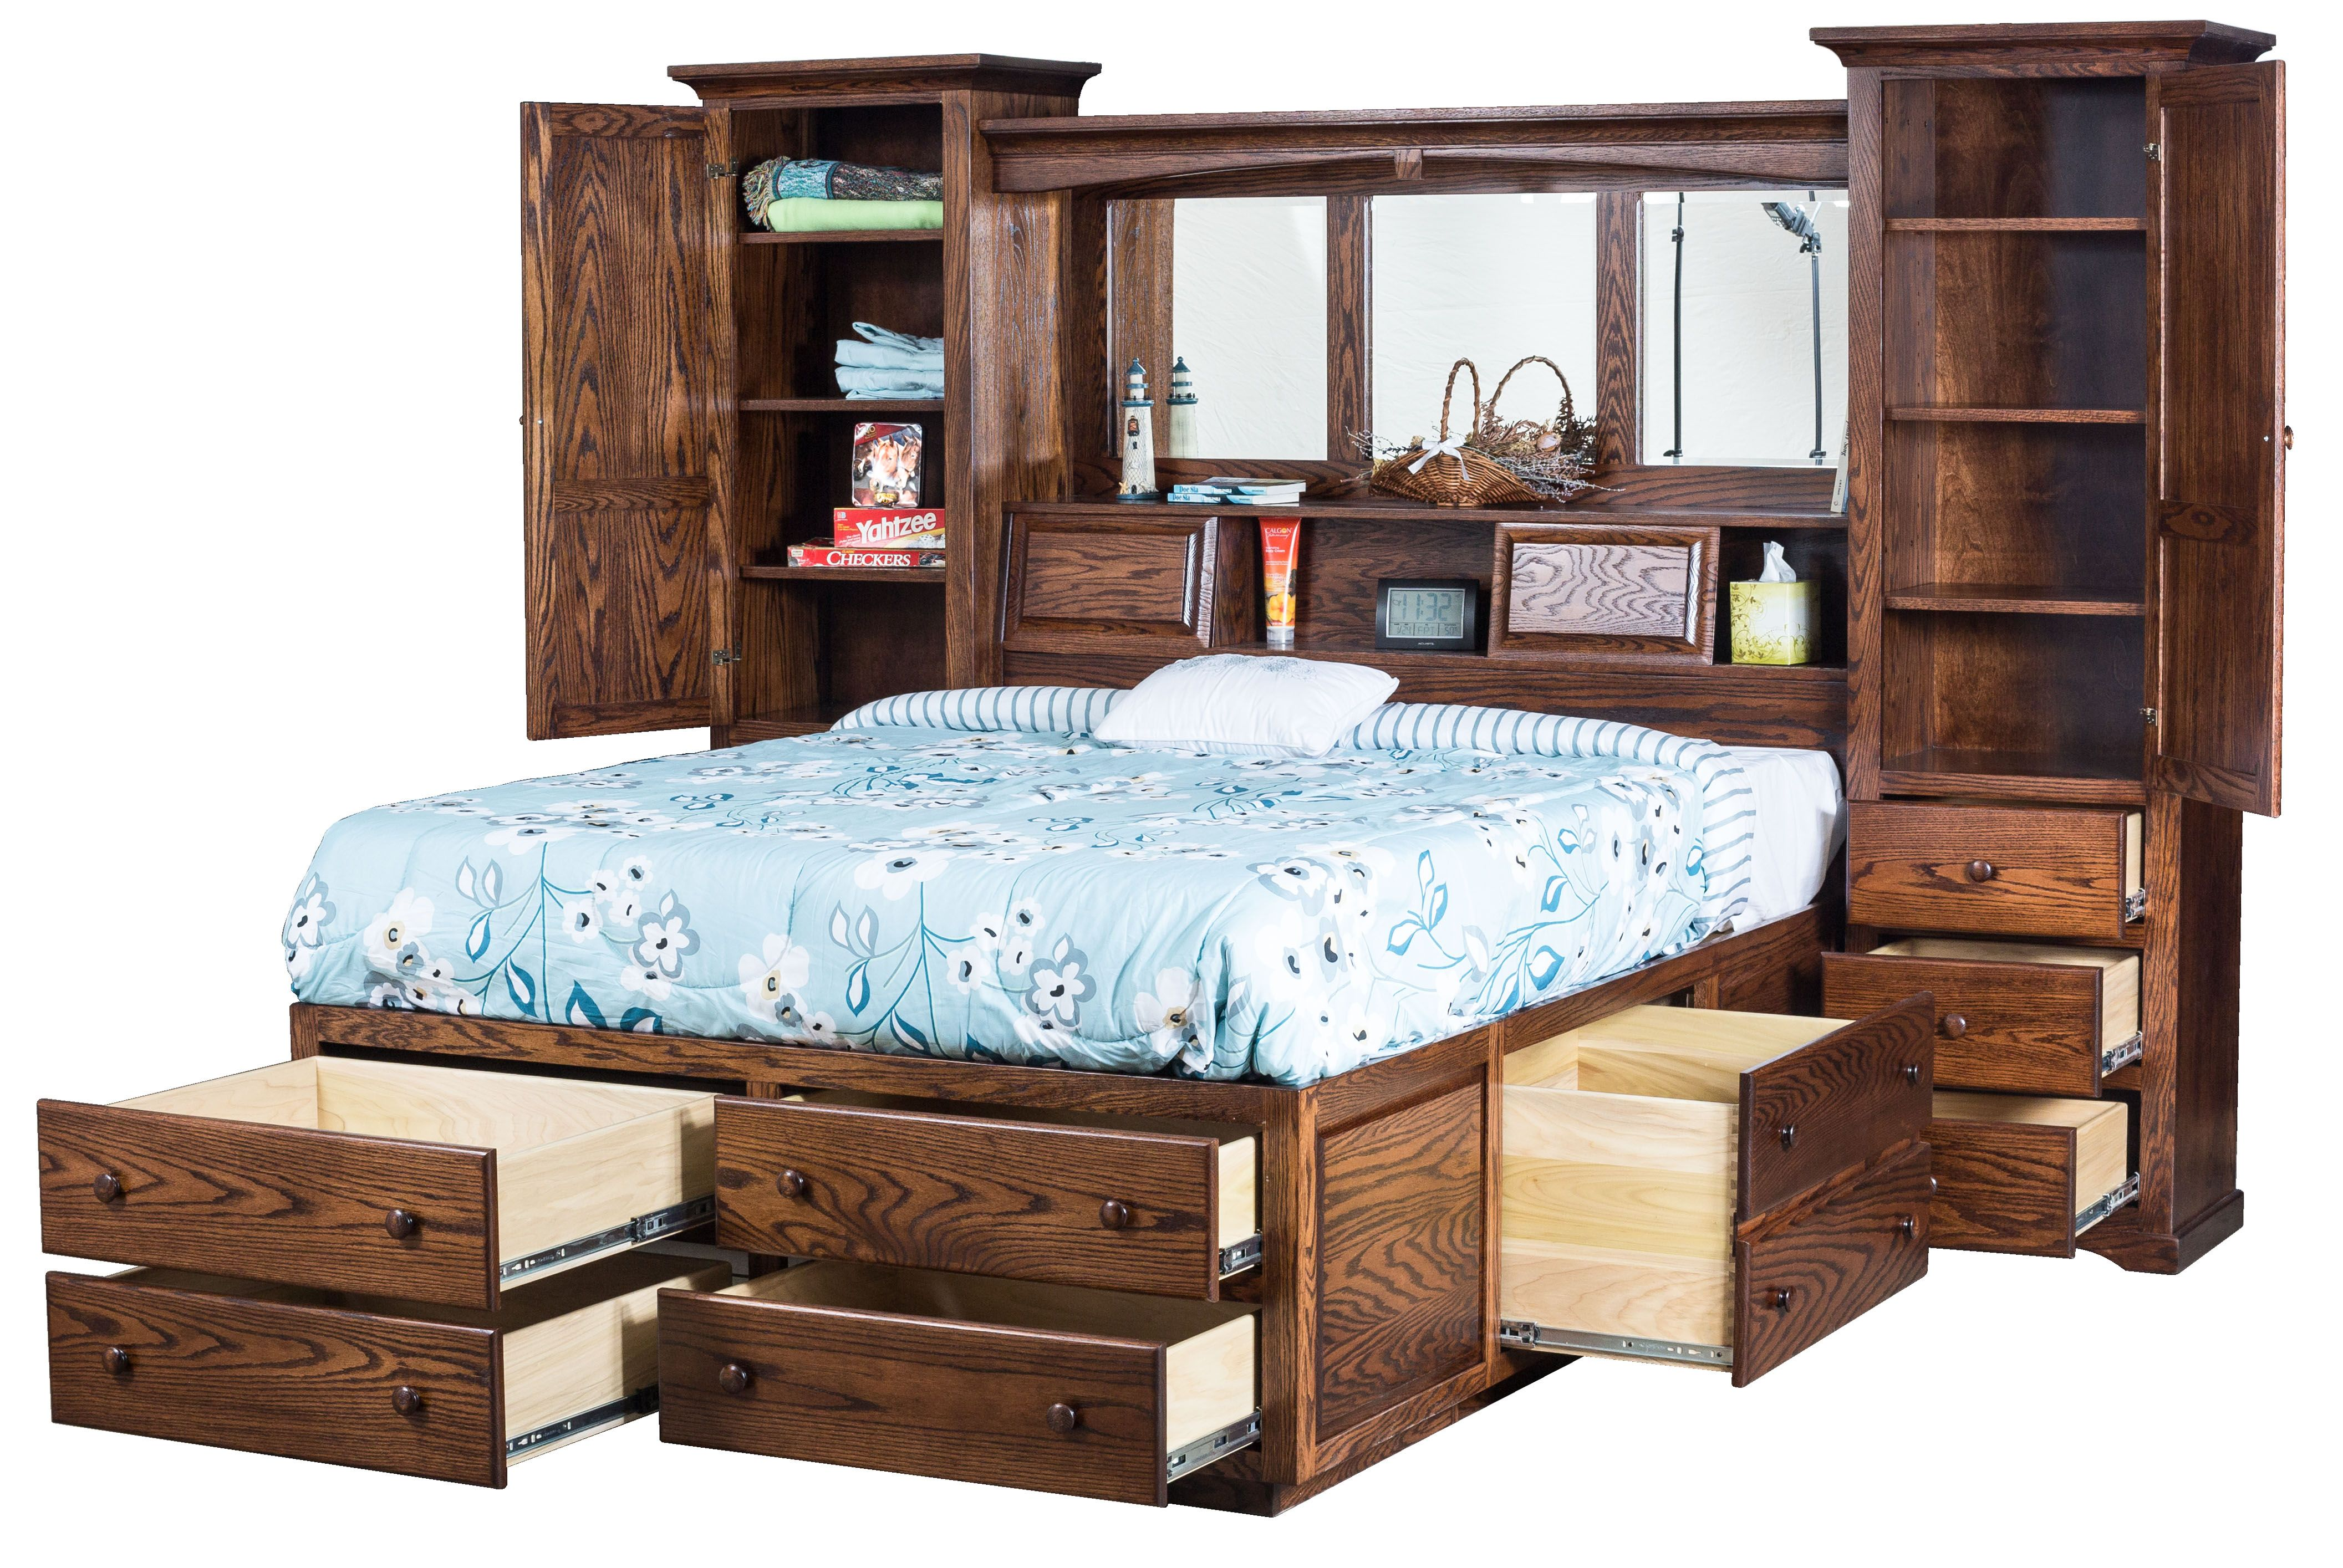 Bookcase headboard beds bedroom furniture amish oak in - Bedroom furniture bookcase headboard ...